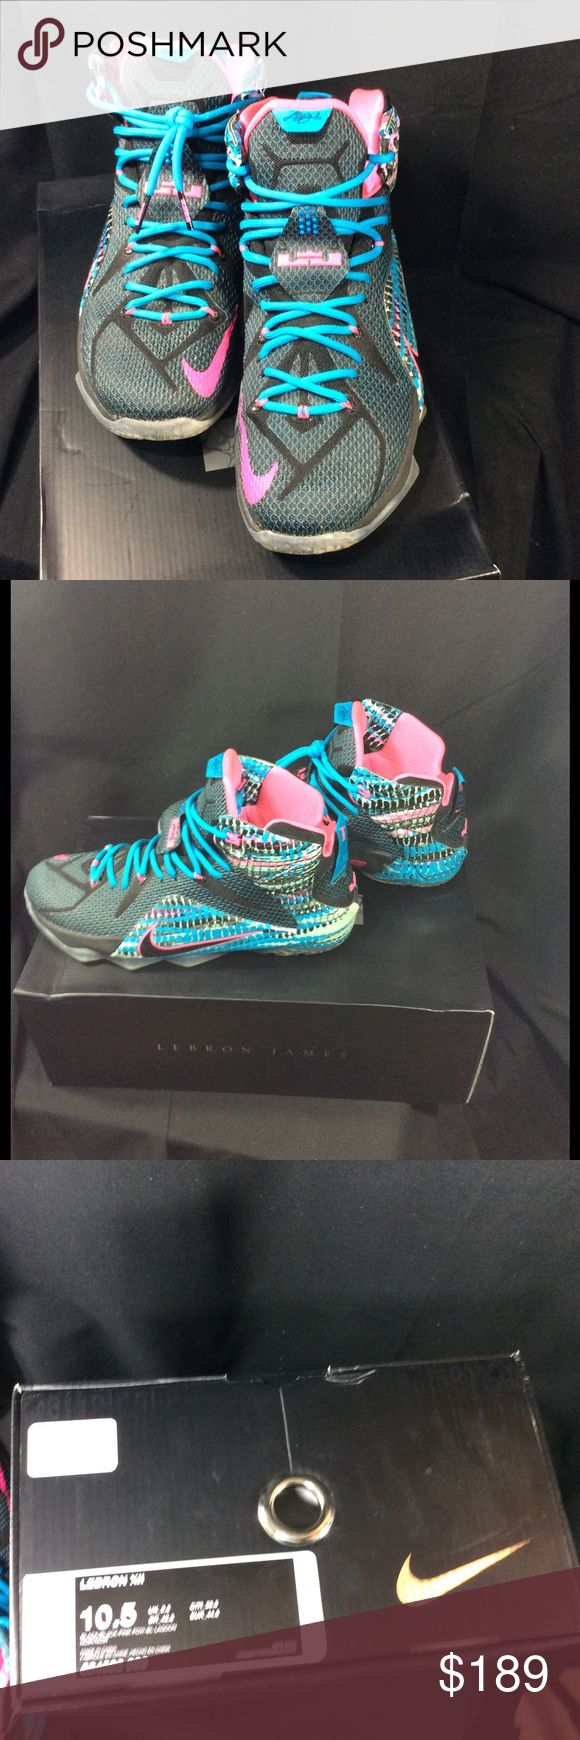 Lebron James Nike XII sz 10.5 black lagoon shoes Lebron James Nike XII size 10.5 black pink black lagoon basketball shoes  men's. Comes with original box. Smoke free home. Great condition. Some of the inside writing on foot has worn off see photo. nike lebron james  Shoes Athletic Shoes